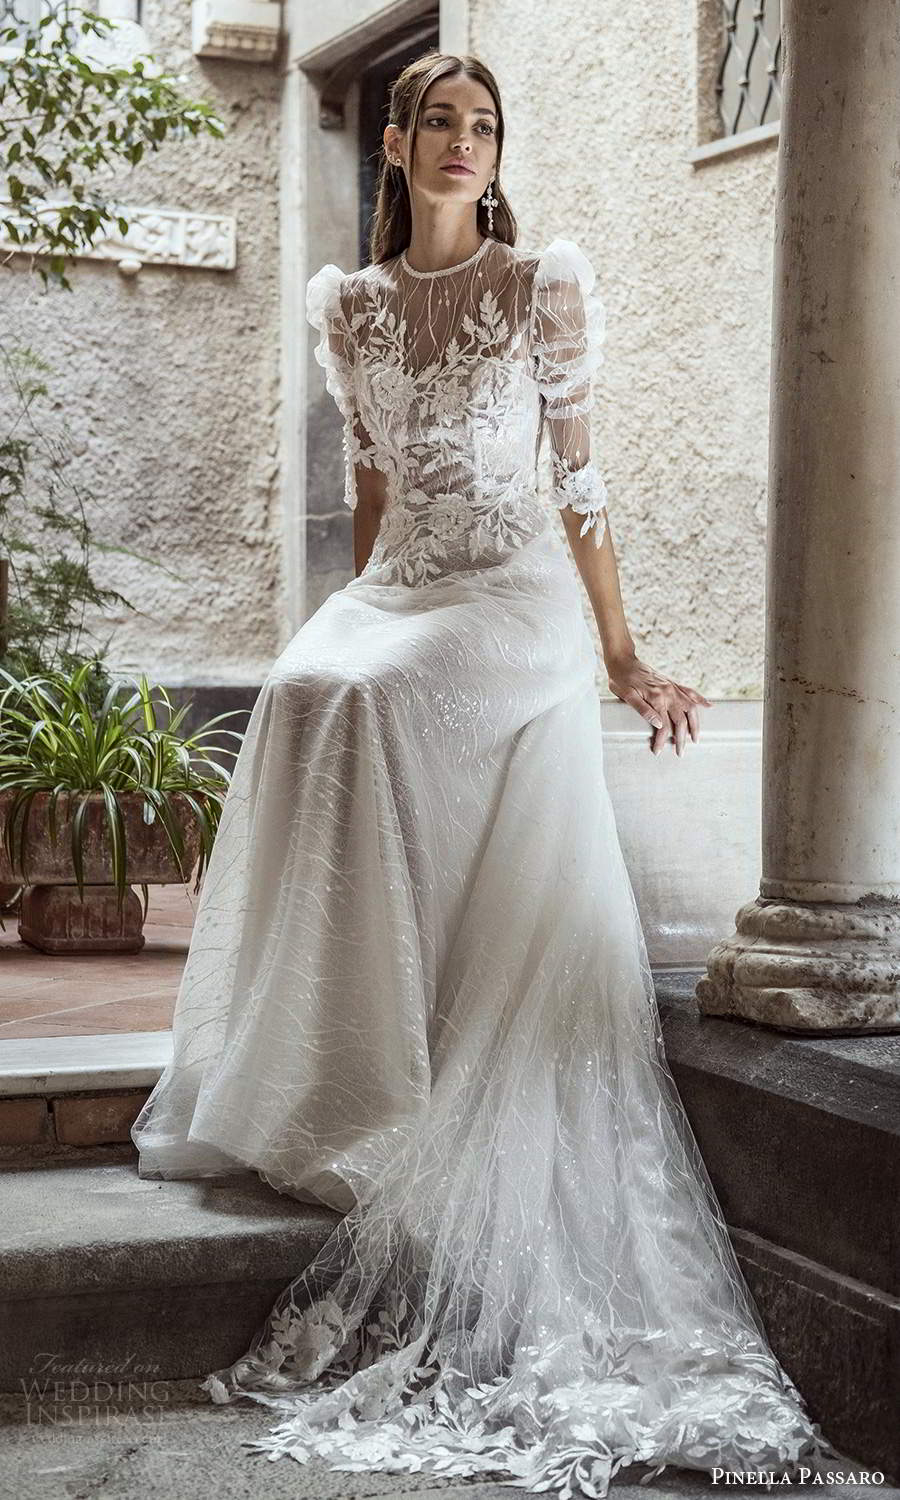 pinella passaro 2021 bridal 3 quarter puff sleeves sheer jewel neck sweetheart neckline fully embellished lace a line ball gown wedding dress chapel train (5) zv